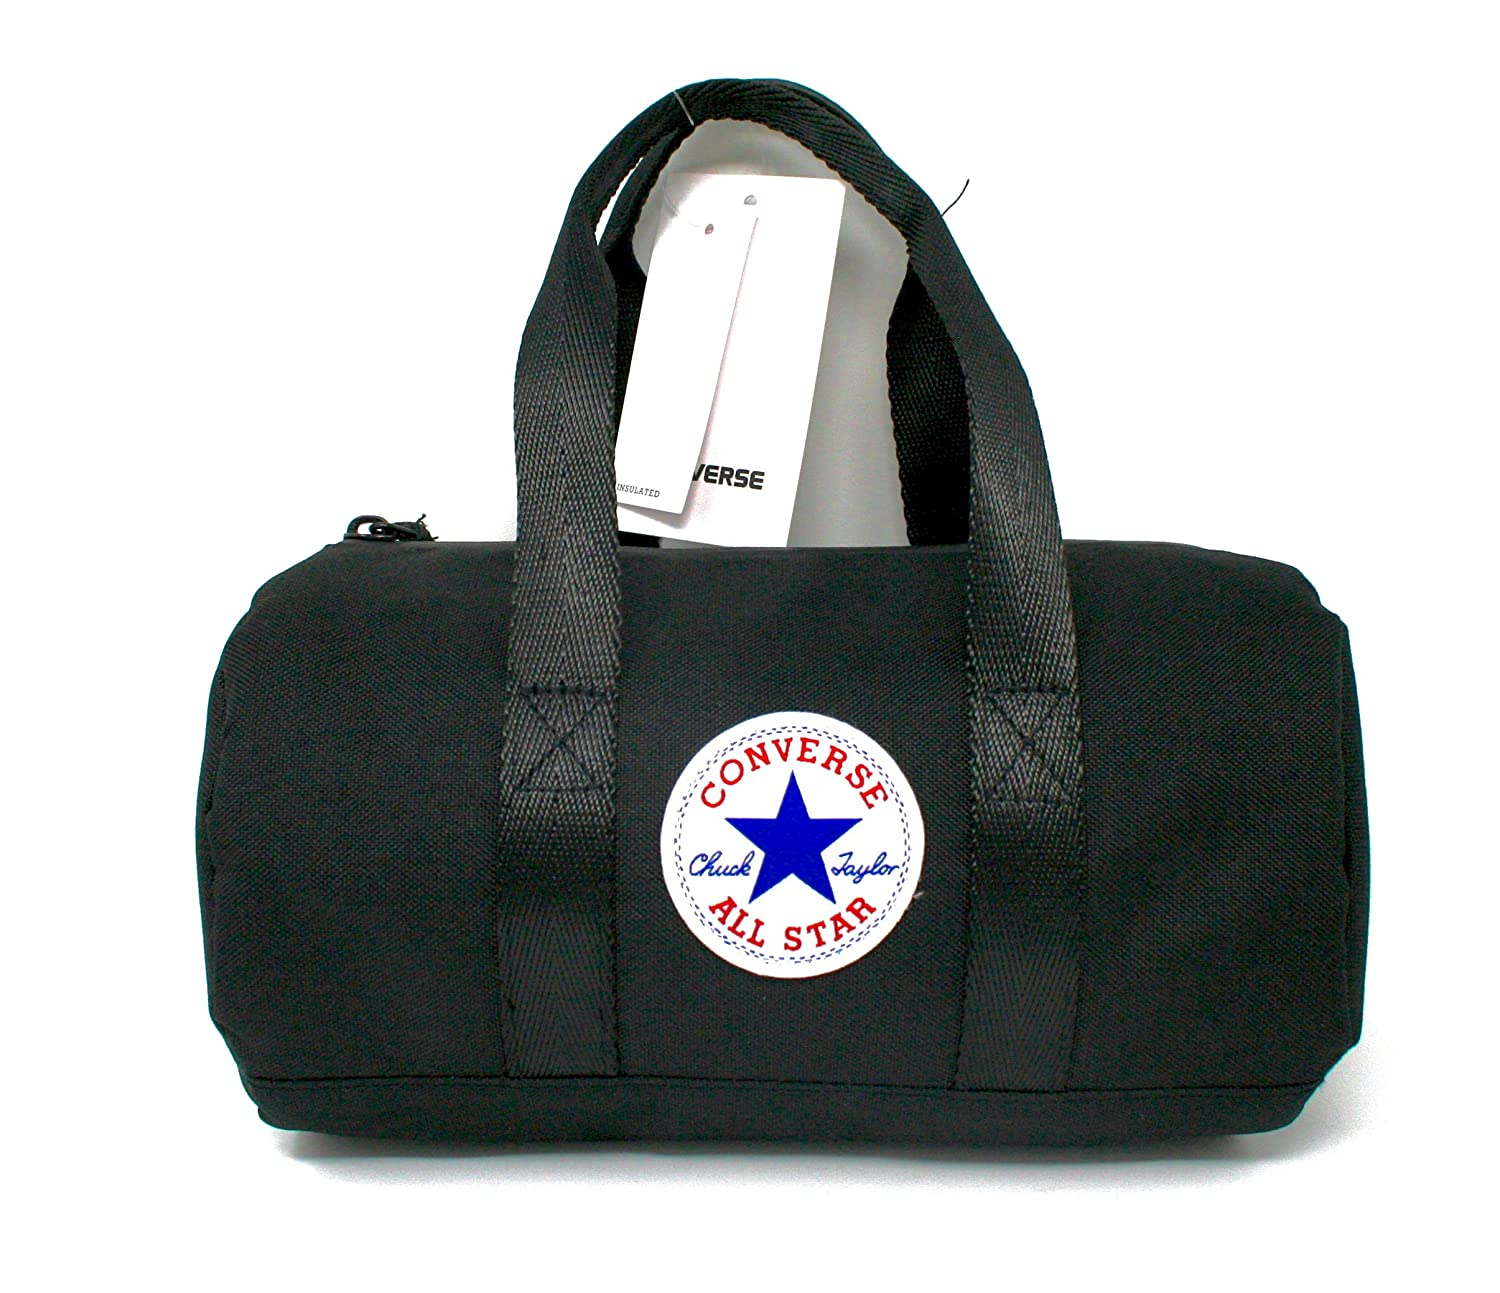 Amazon.com  Converse Chuck Taylor All Star Duffel Tote Lunch Bag (Black)   Kitchen   Dining 0357f00a58581